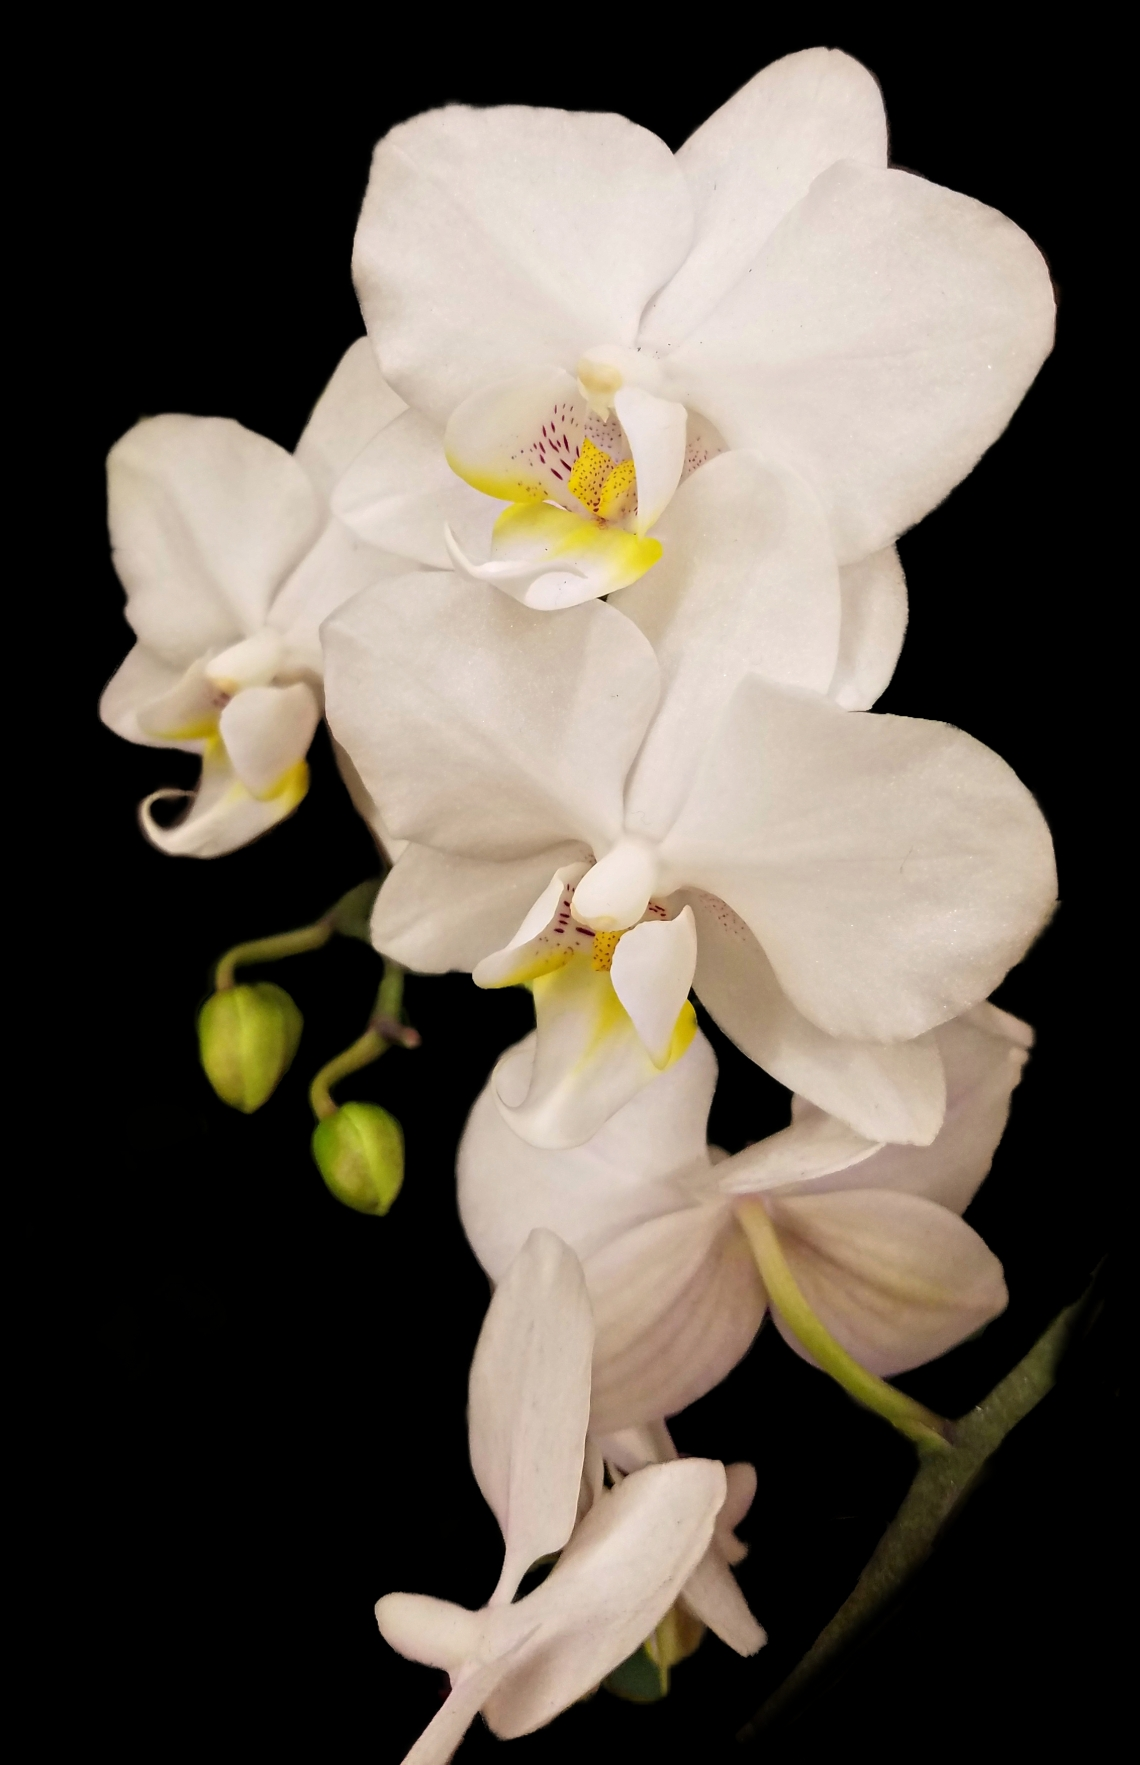 0107-whiteorchid-39477626862_A